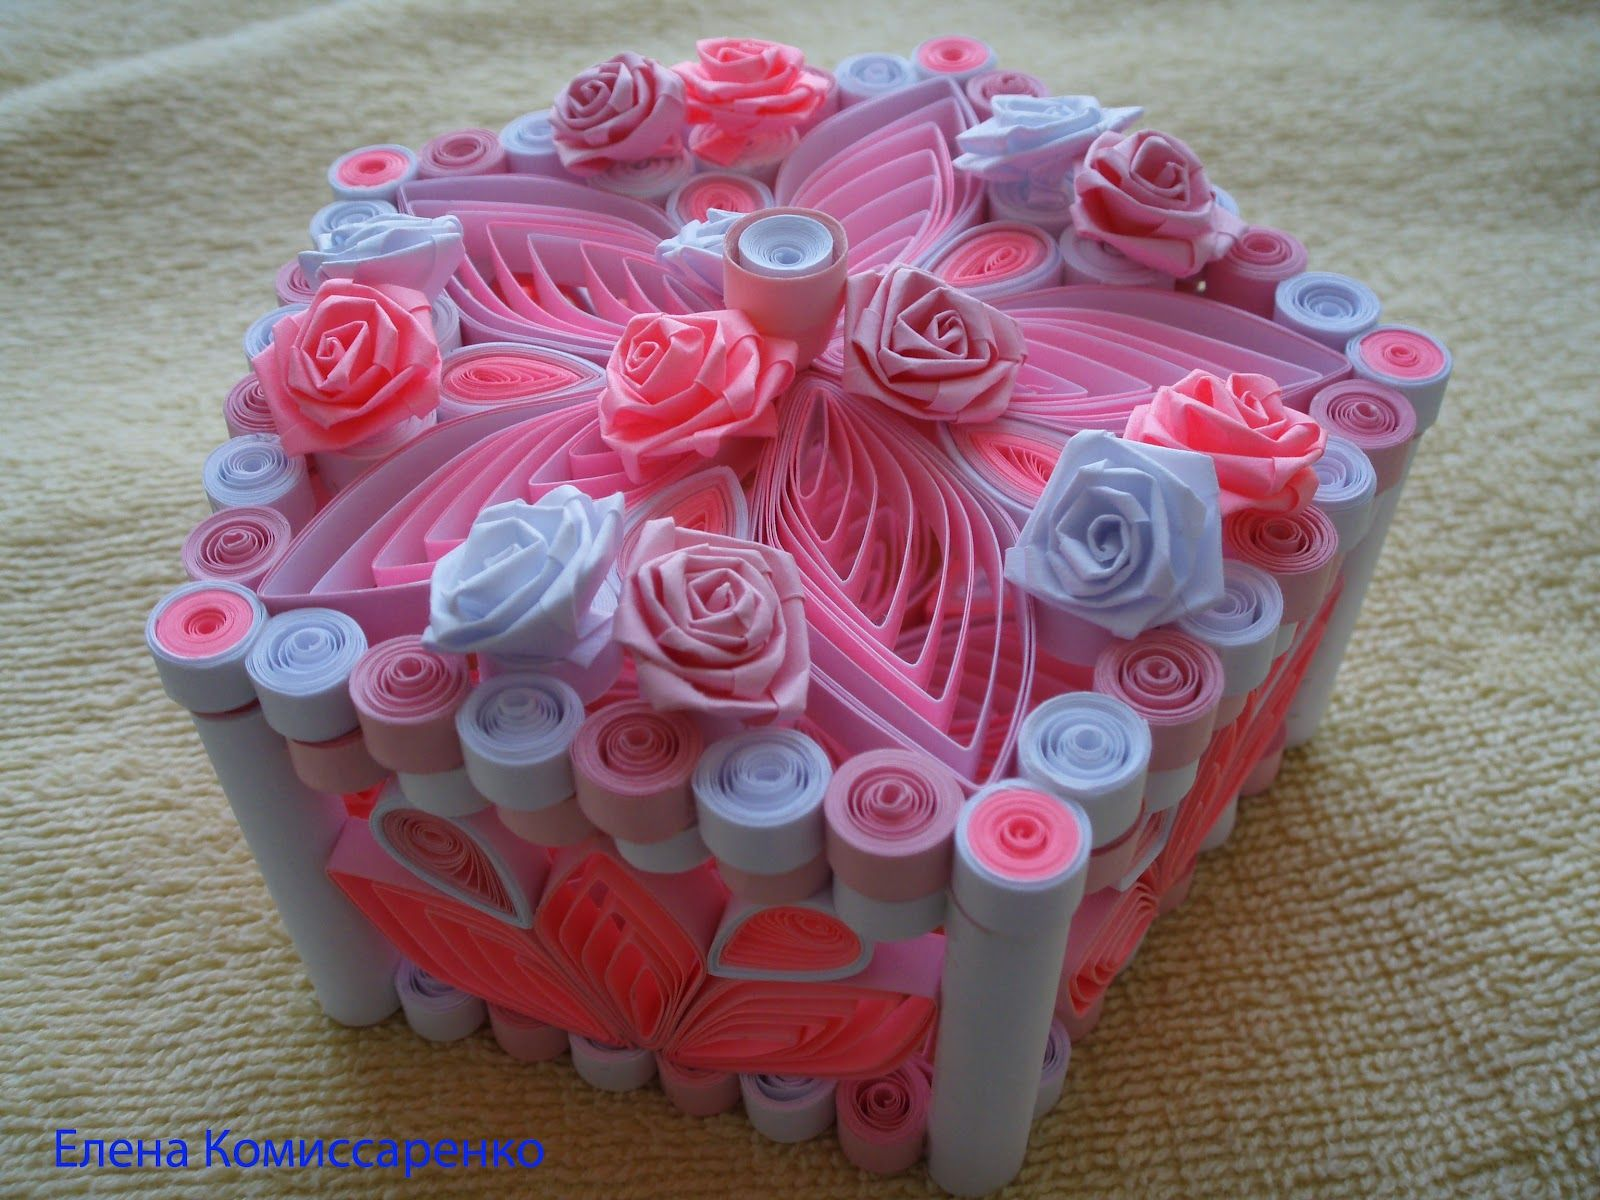 Small world of creativity The small world of creative , Quilled Box decorate  with Roses ,